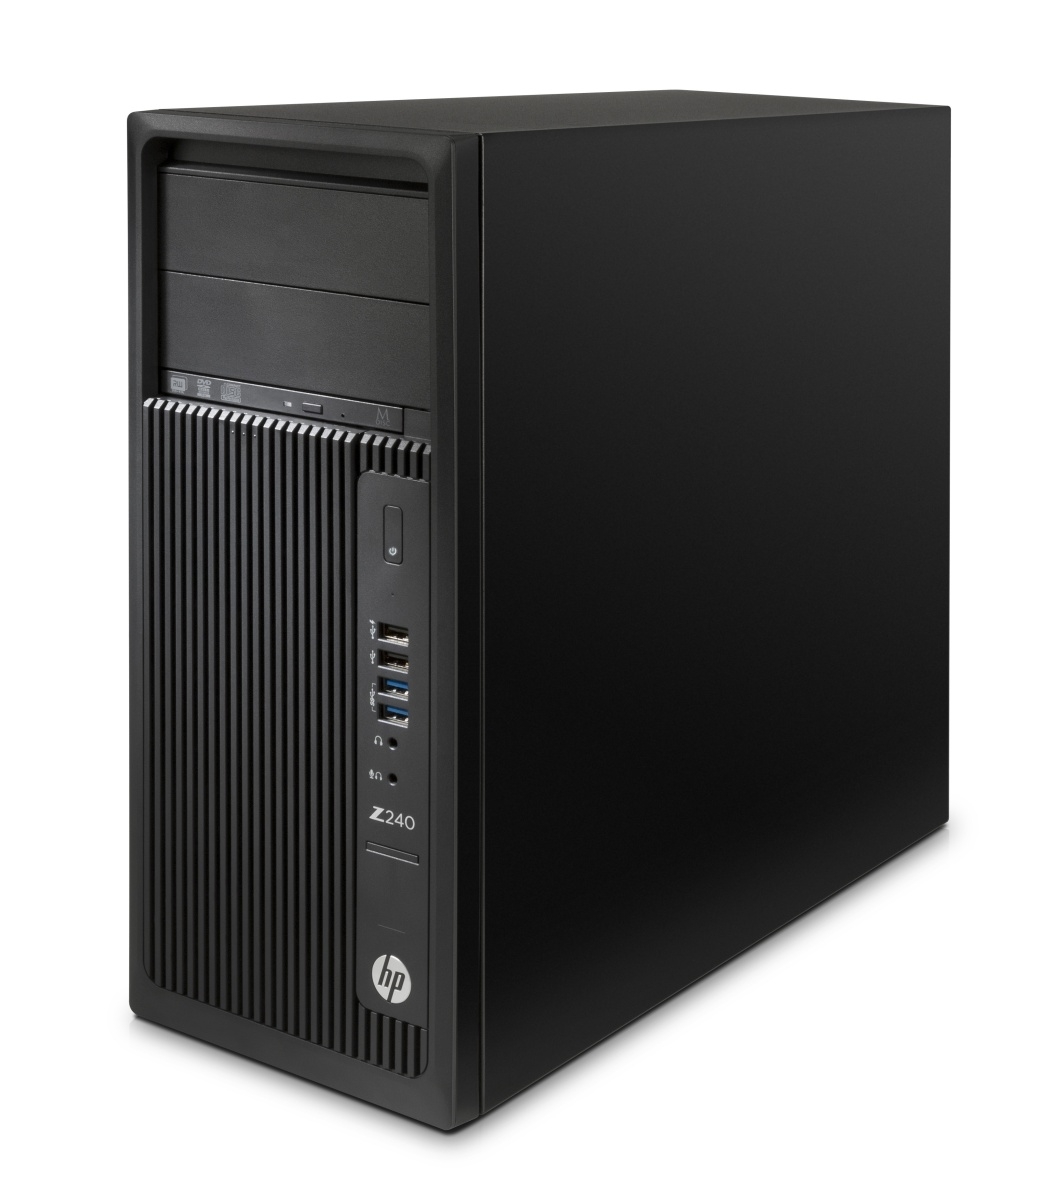 HP Z240 TWR E3-1240v5 3.5 GHz /32GB DDR4-2133 nECC (2x16GB)/512GB SSD/NVIDIA Quadro M2000 4GB 4xDP /Win 10 Pro